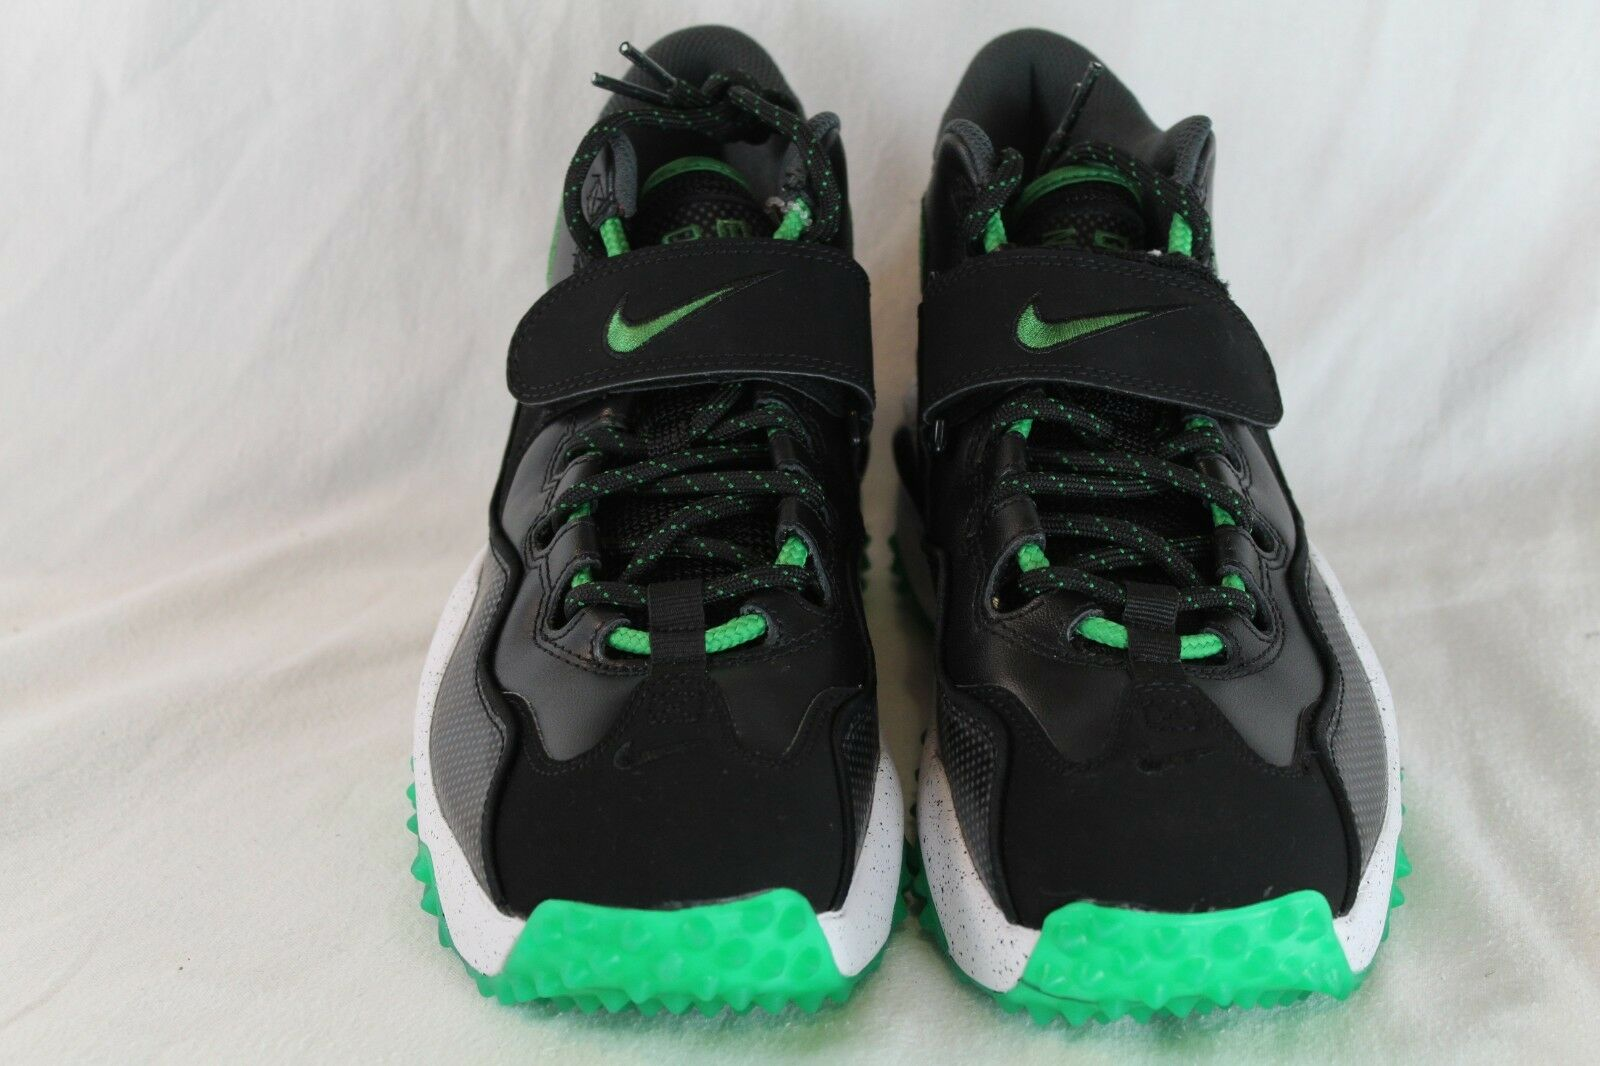 Nike Air Zoom Turf Oregon Ducks Size 9.5 DS Brand New 644104-001